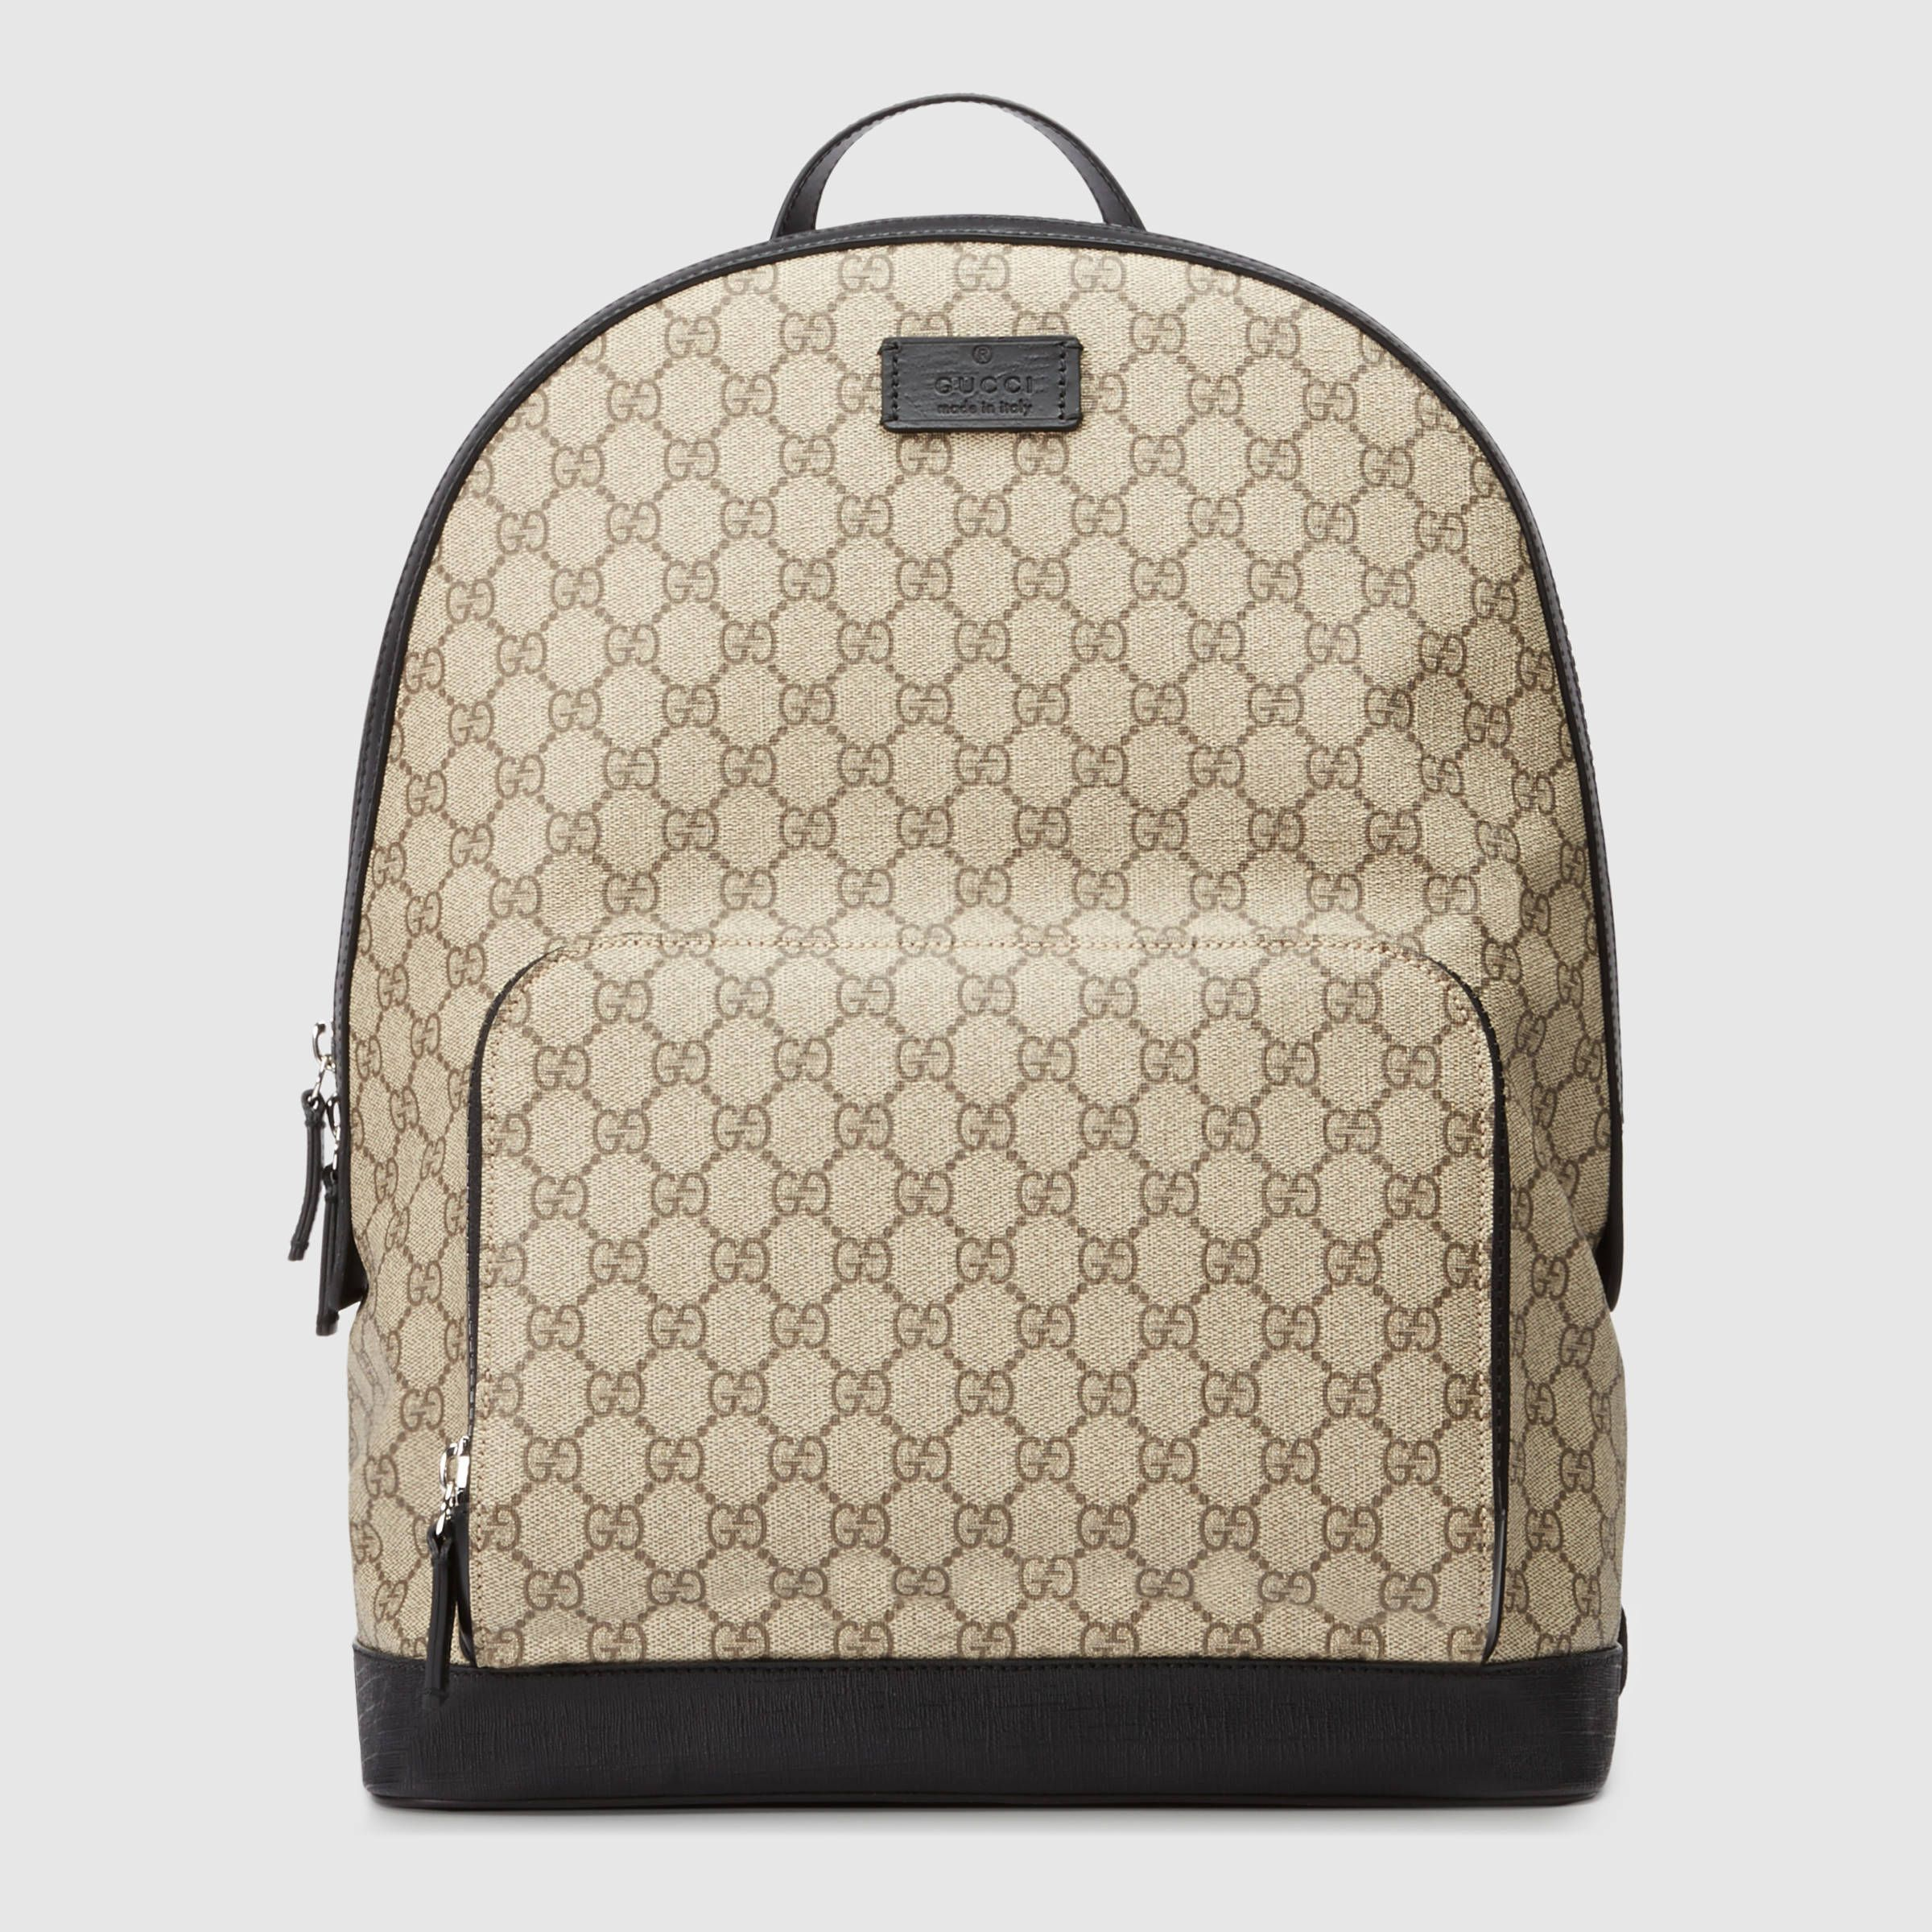 68976f06799d Gucci GG Supreme Backpack http://ebagsbackpack.tumblr.com/ Gucci Bags